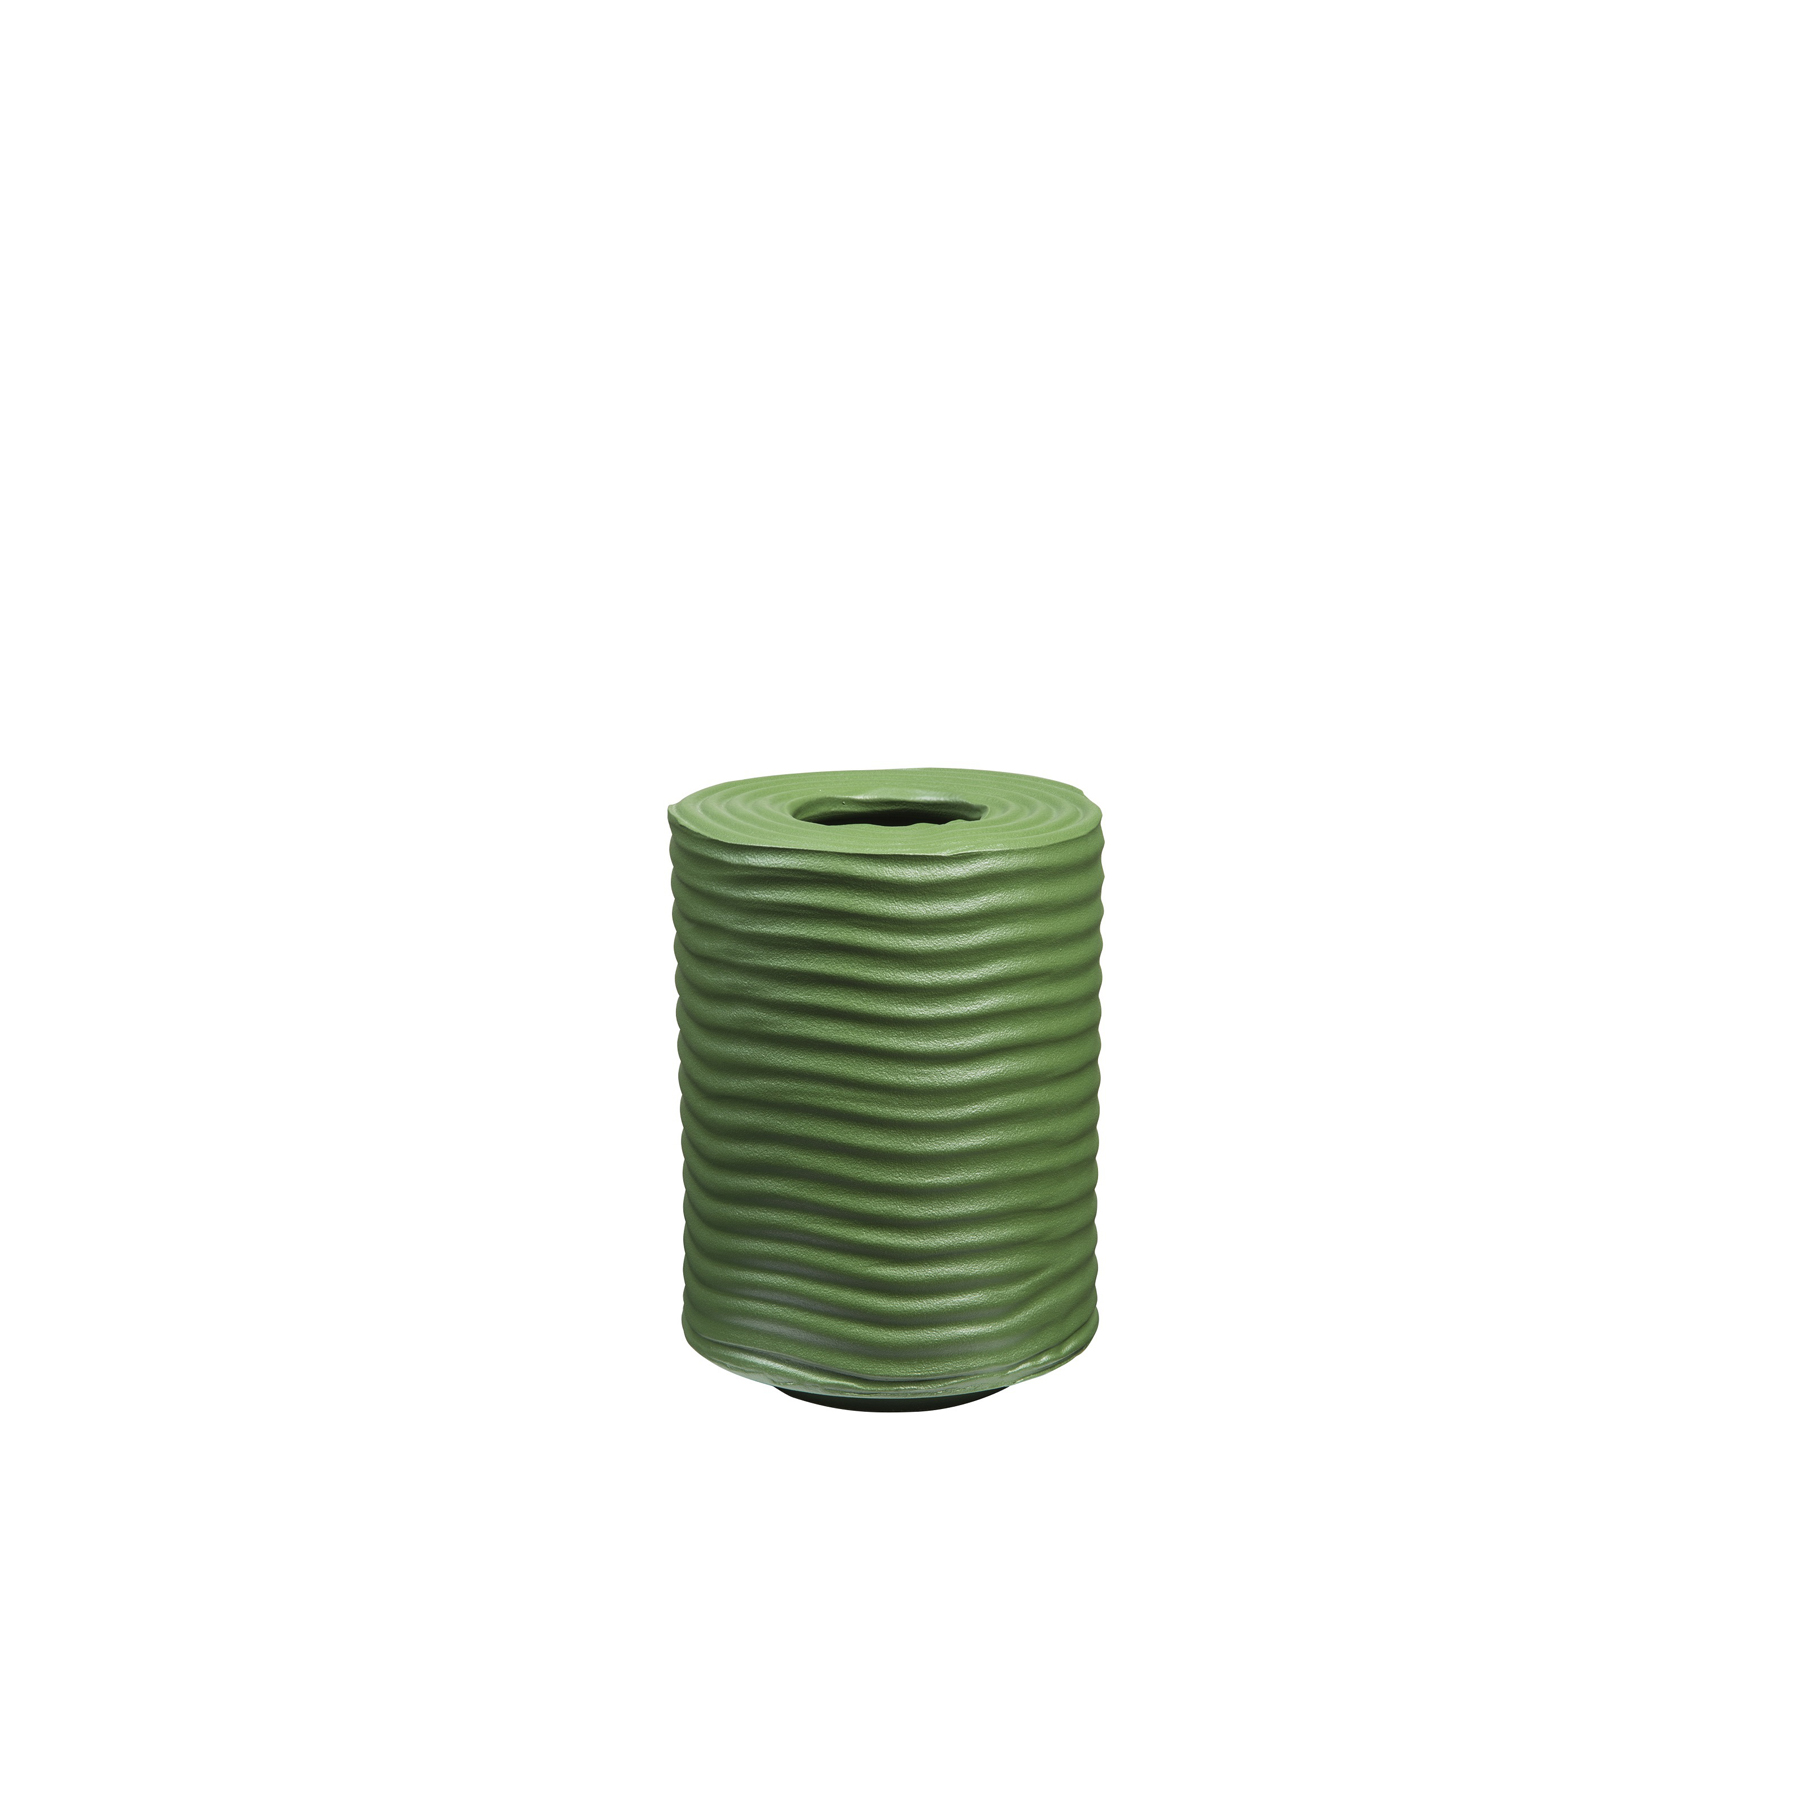 Wiggle Tall Round Vase - This striking vase was entirely crafted by hand in ceramic and it is perfectly suited to a modern environment thanks to its bright and bold green glaze and its glossy finish. This piece features a cylindrical shape of medium height with grooves running horizontally across its surface from top to bottom creating an interesting texture. The mouth of the vase is a slender opening making it perfect for holding a small arrangement of flowers.